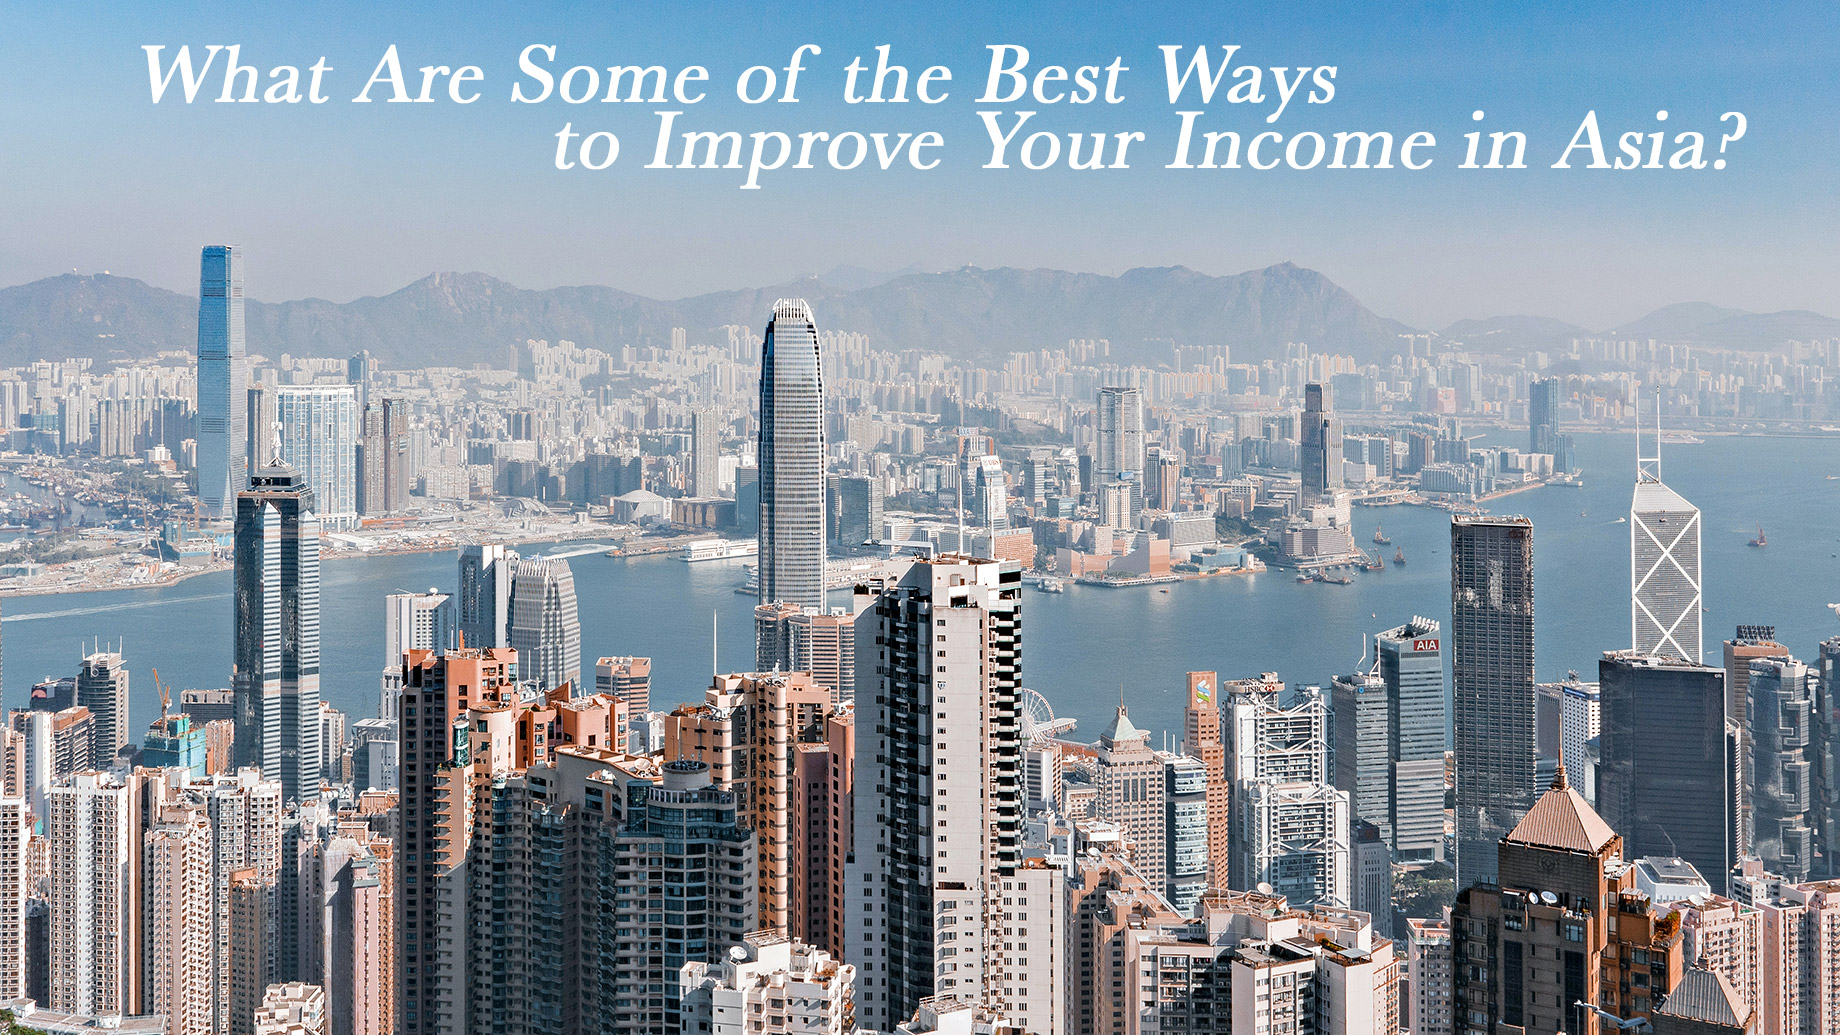 What Are Some of the Best Ways to Improve Your Income in Asia?